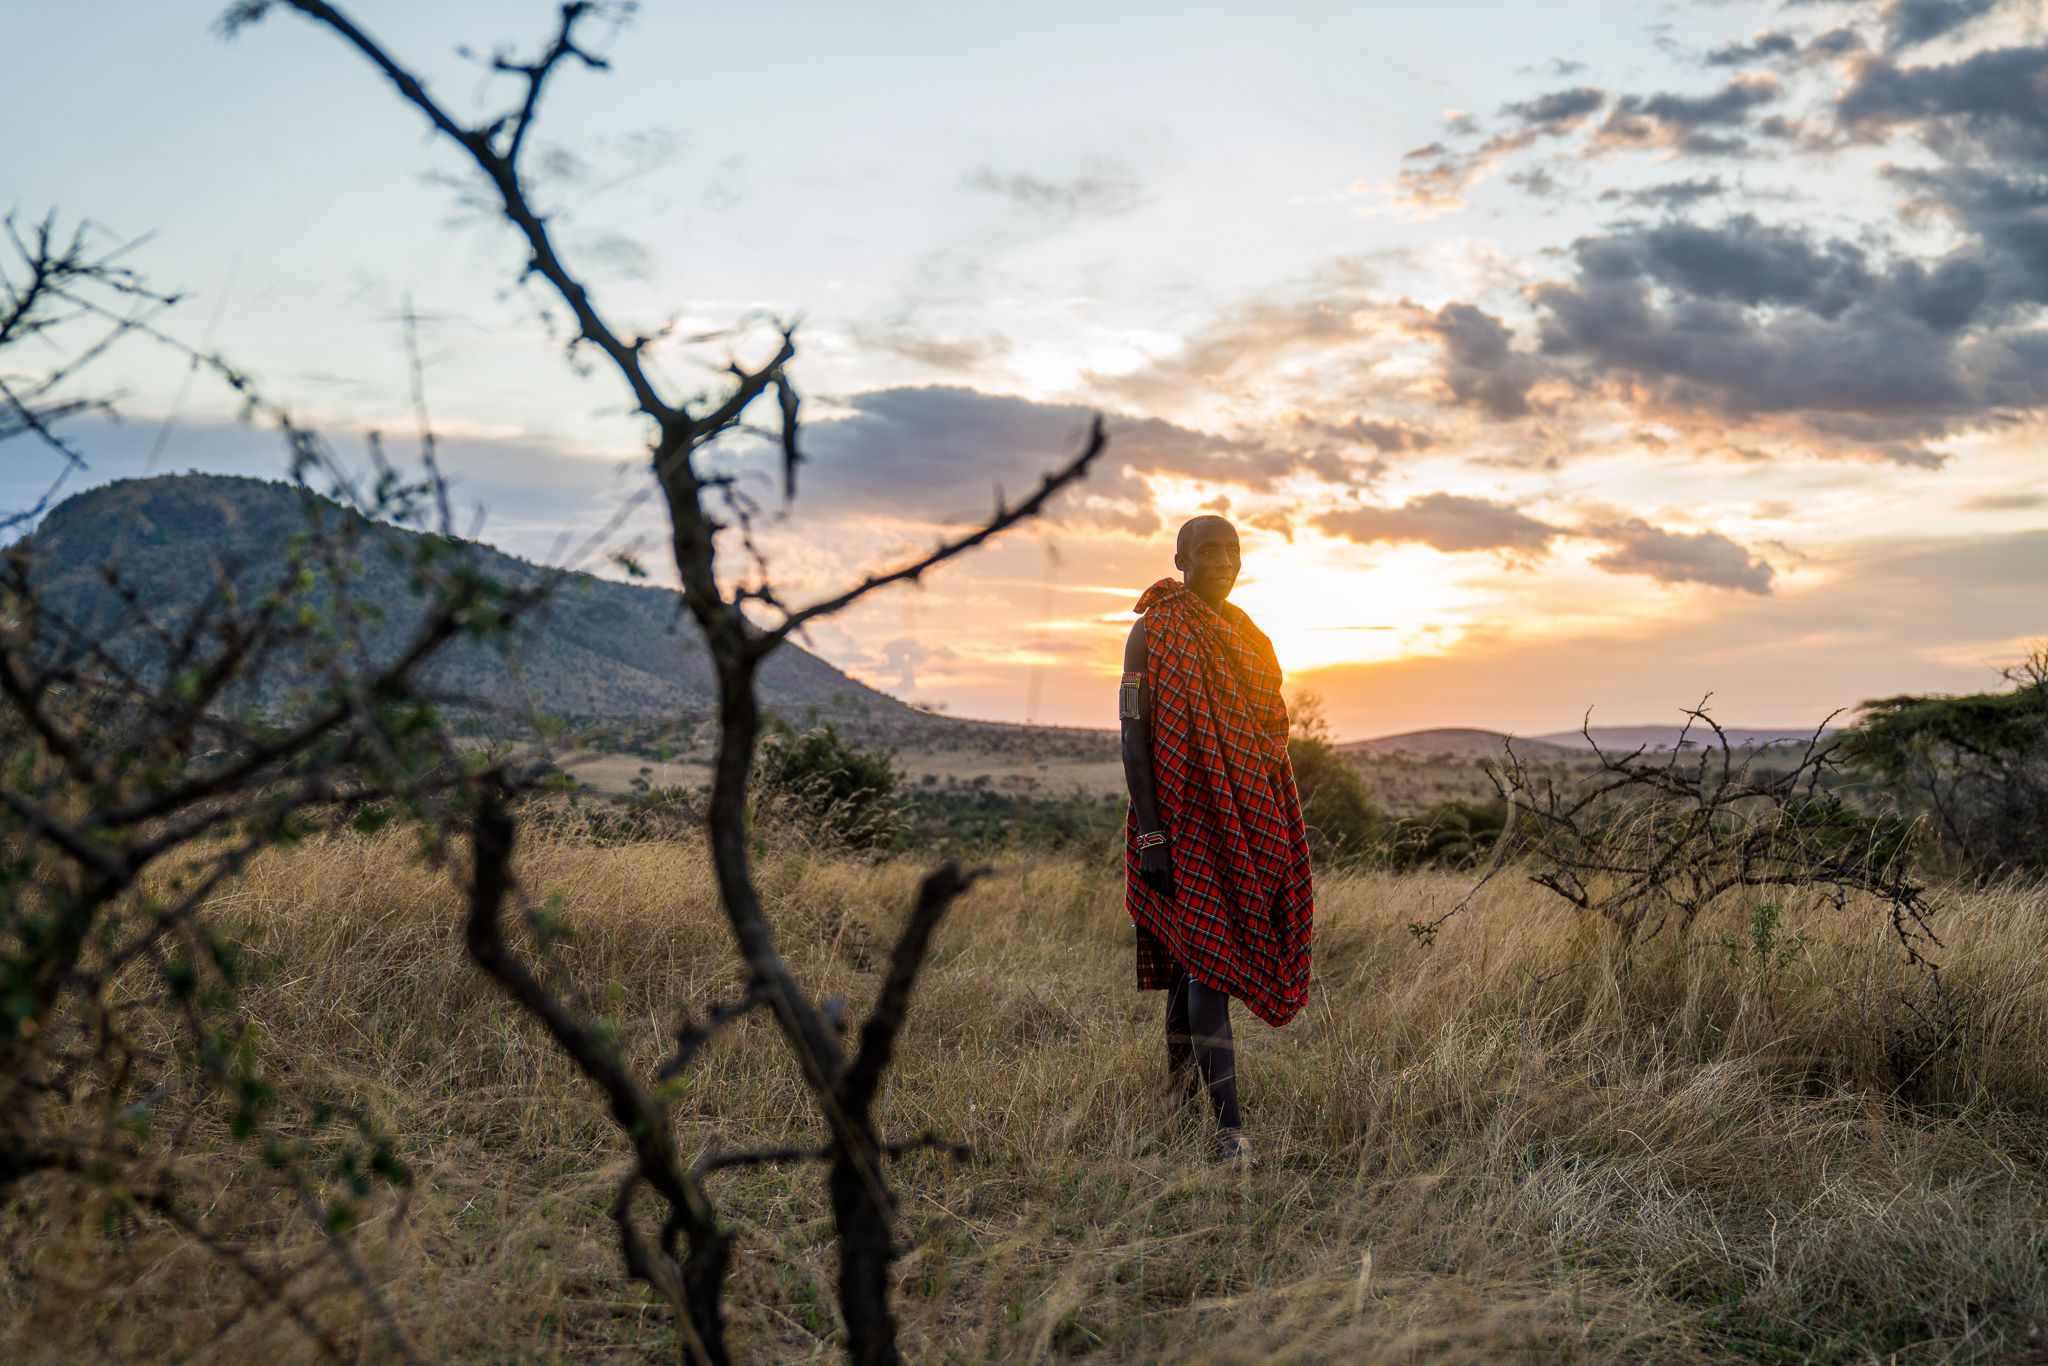 Maasai Guide in Kenya - Cottars 1920 Safari ph by Dave Krugman